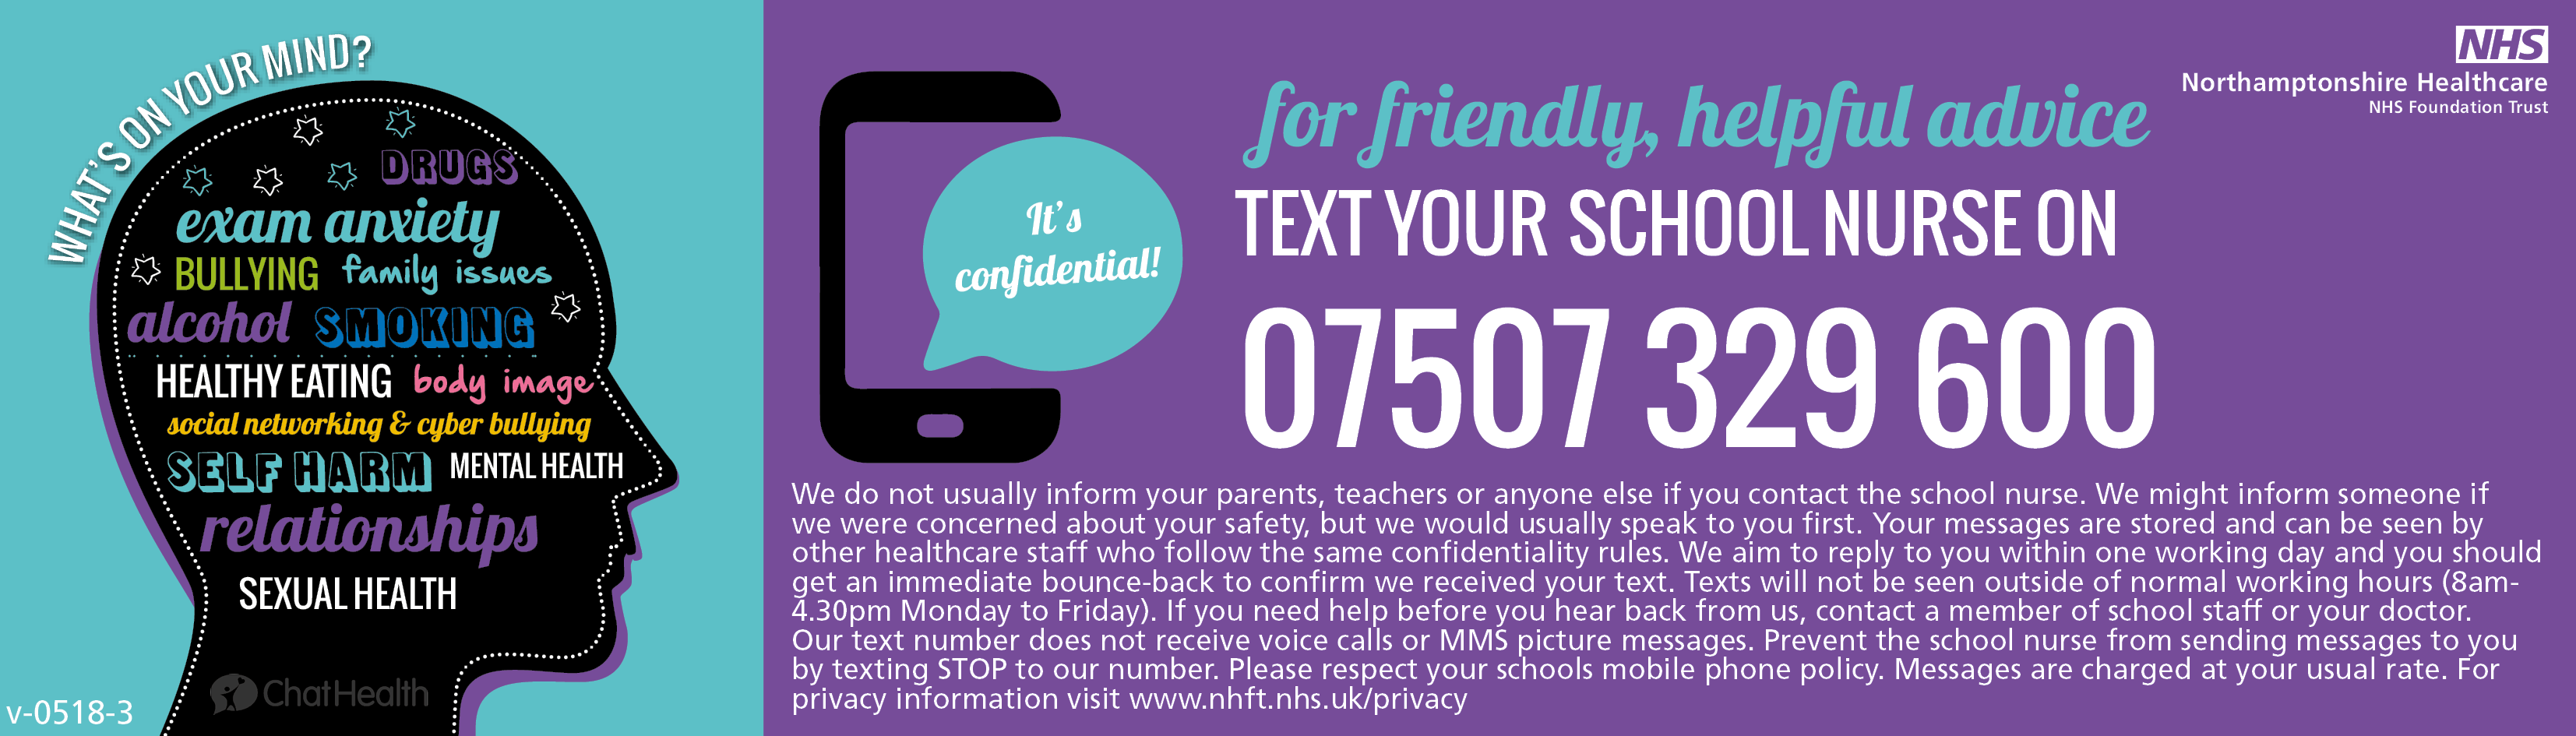 for friendly helpful advice text your school nurse on 07507 329 600